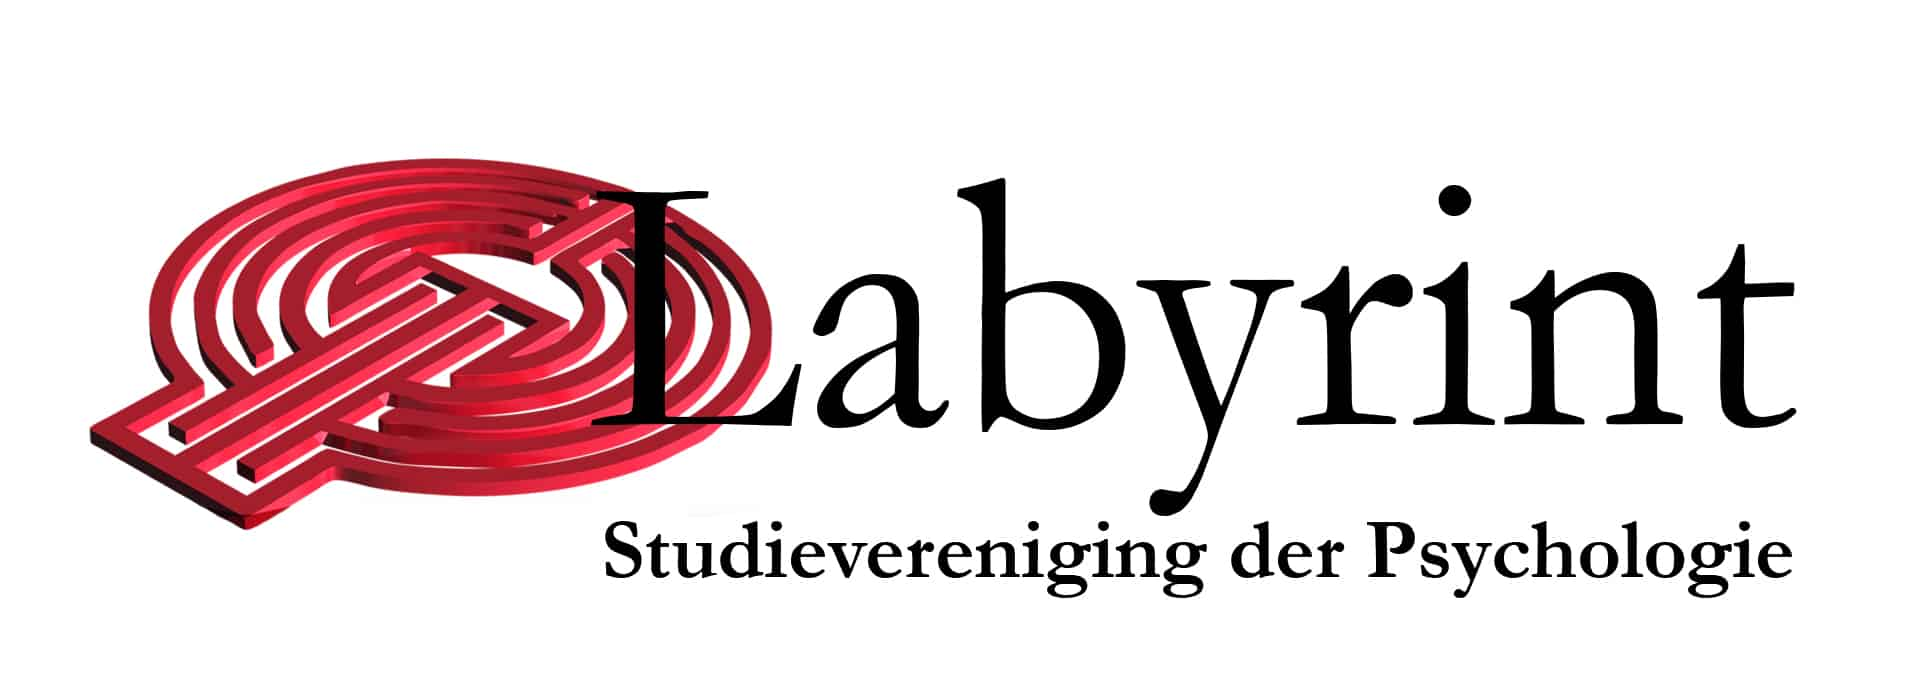 Studievereniging der Psychologie Labyrint